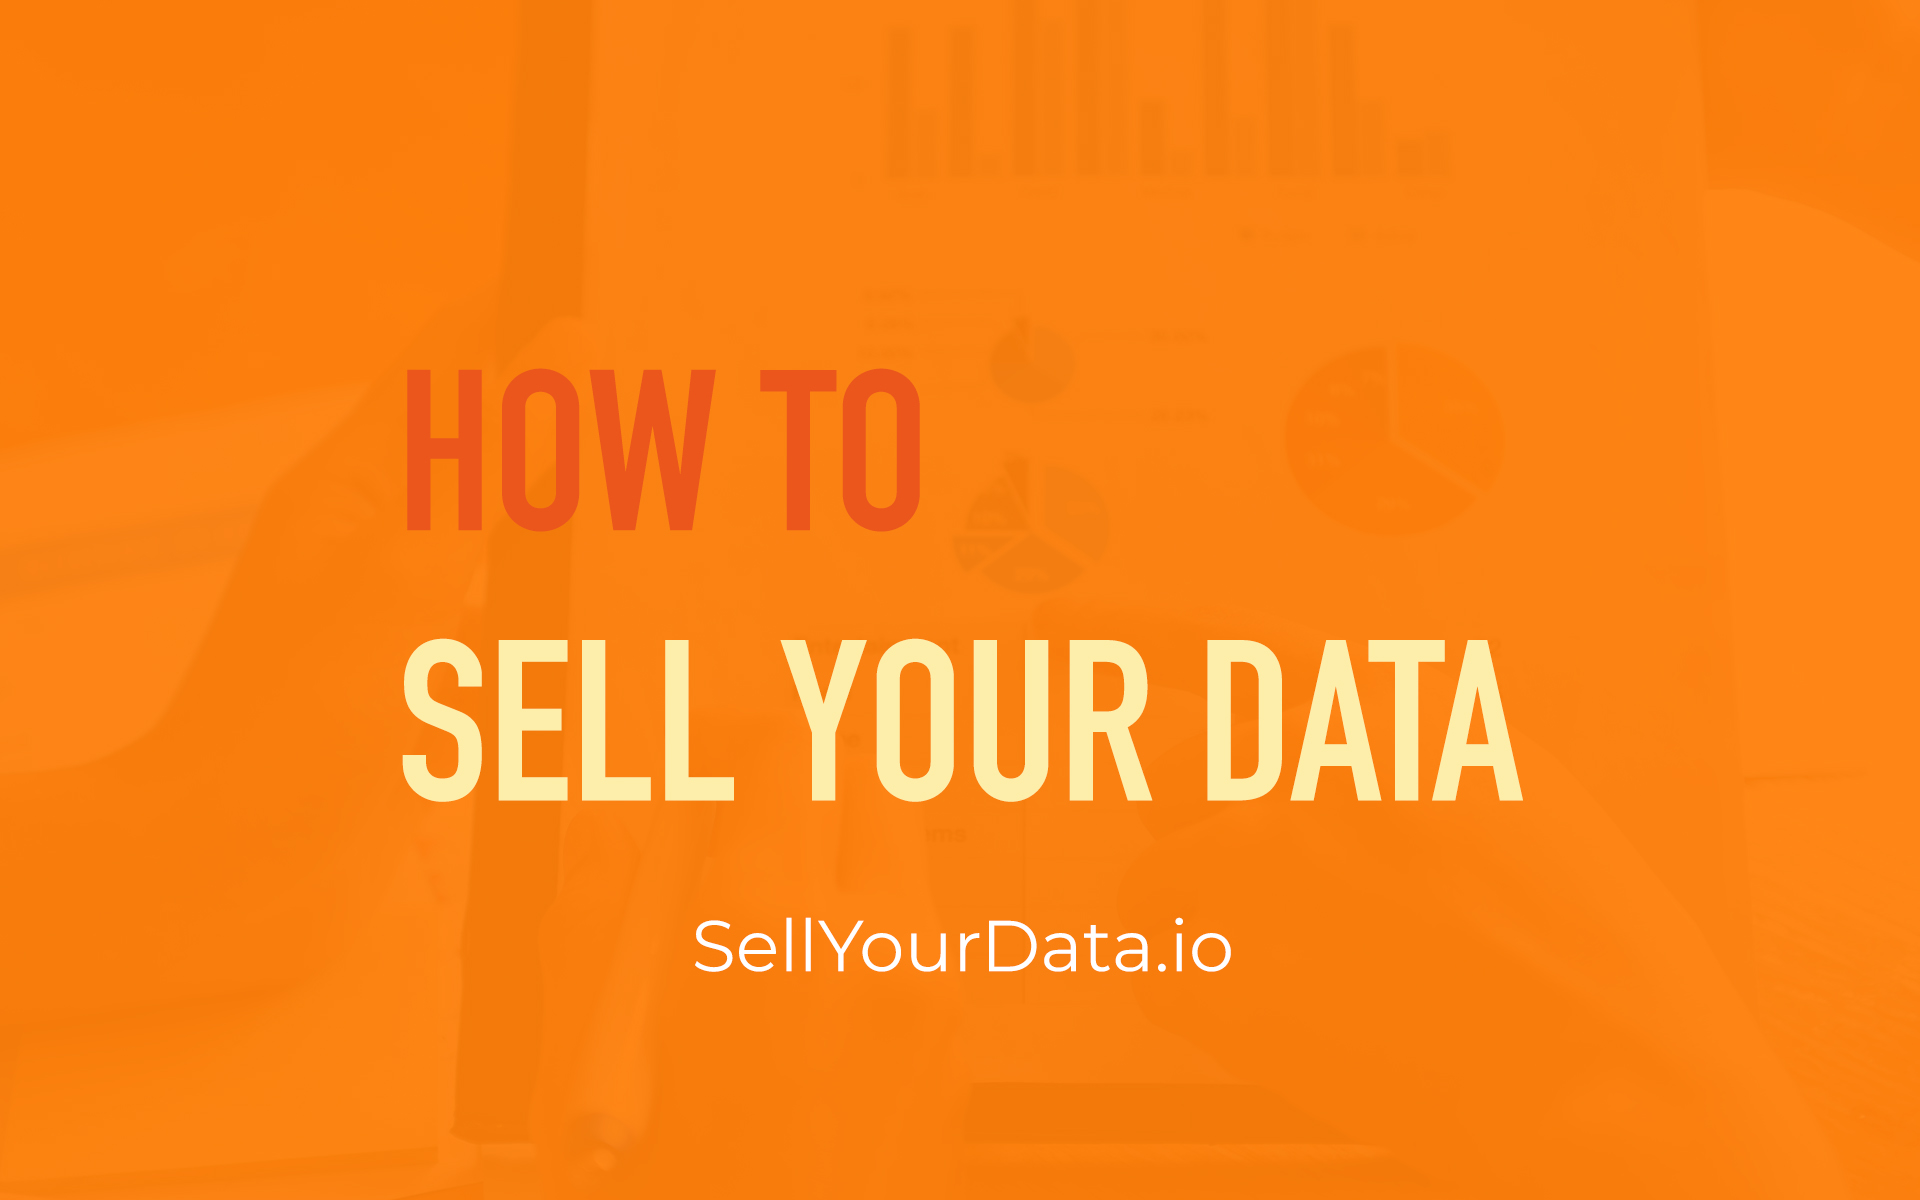 How To Sell Your Data